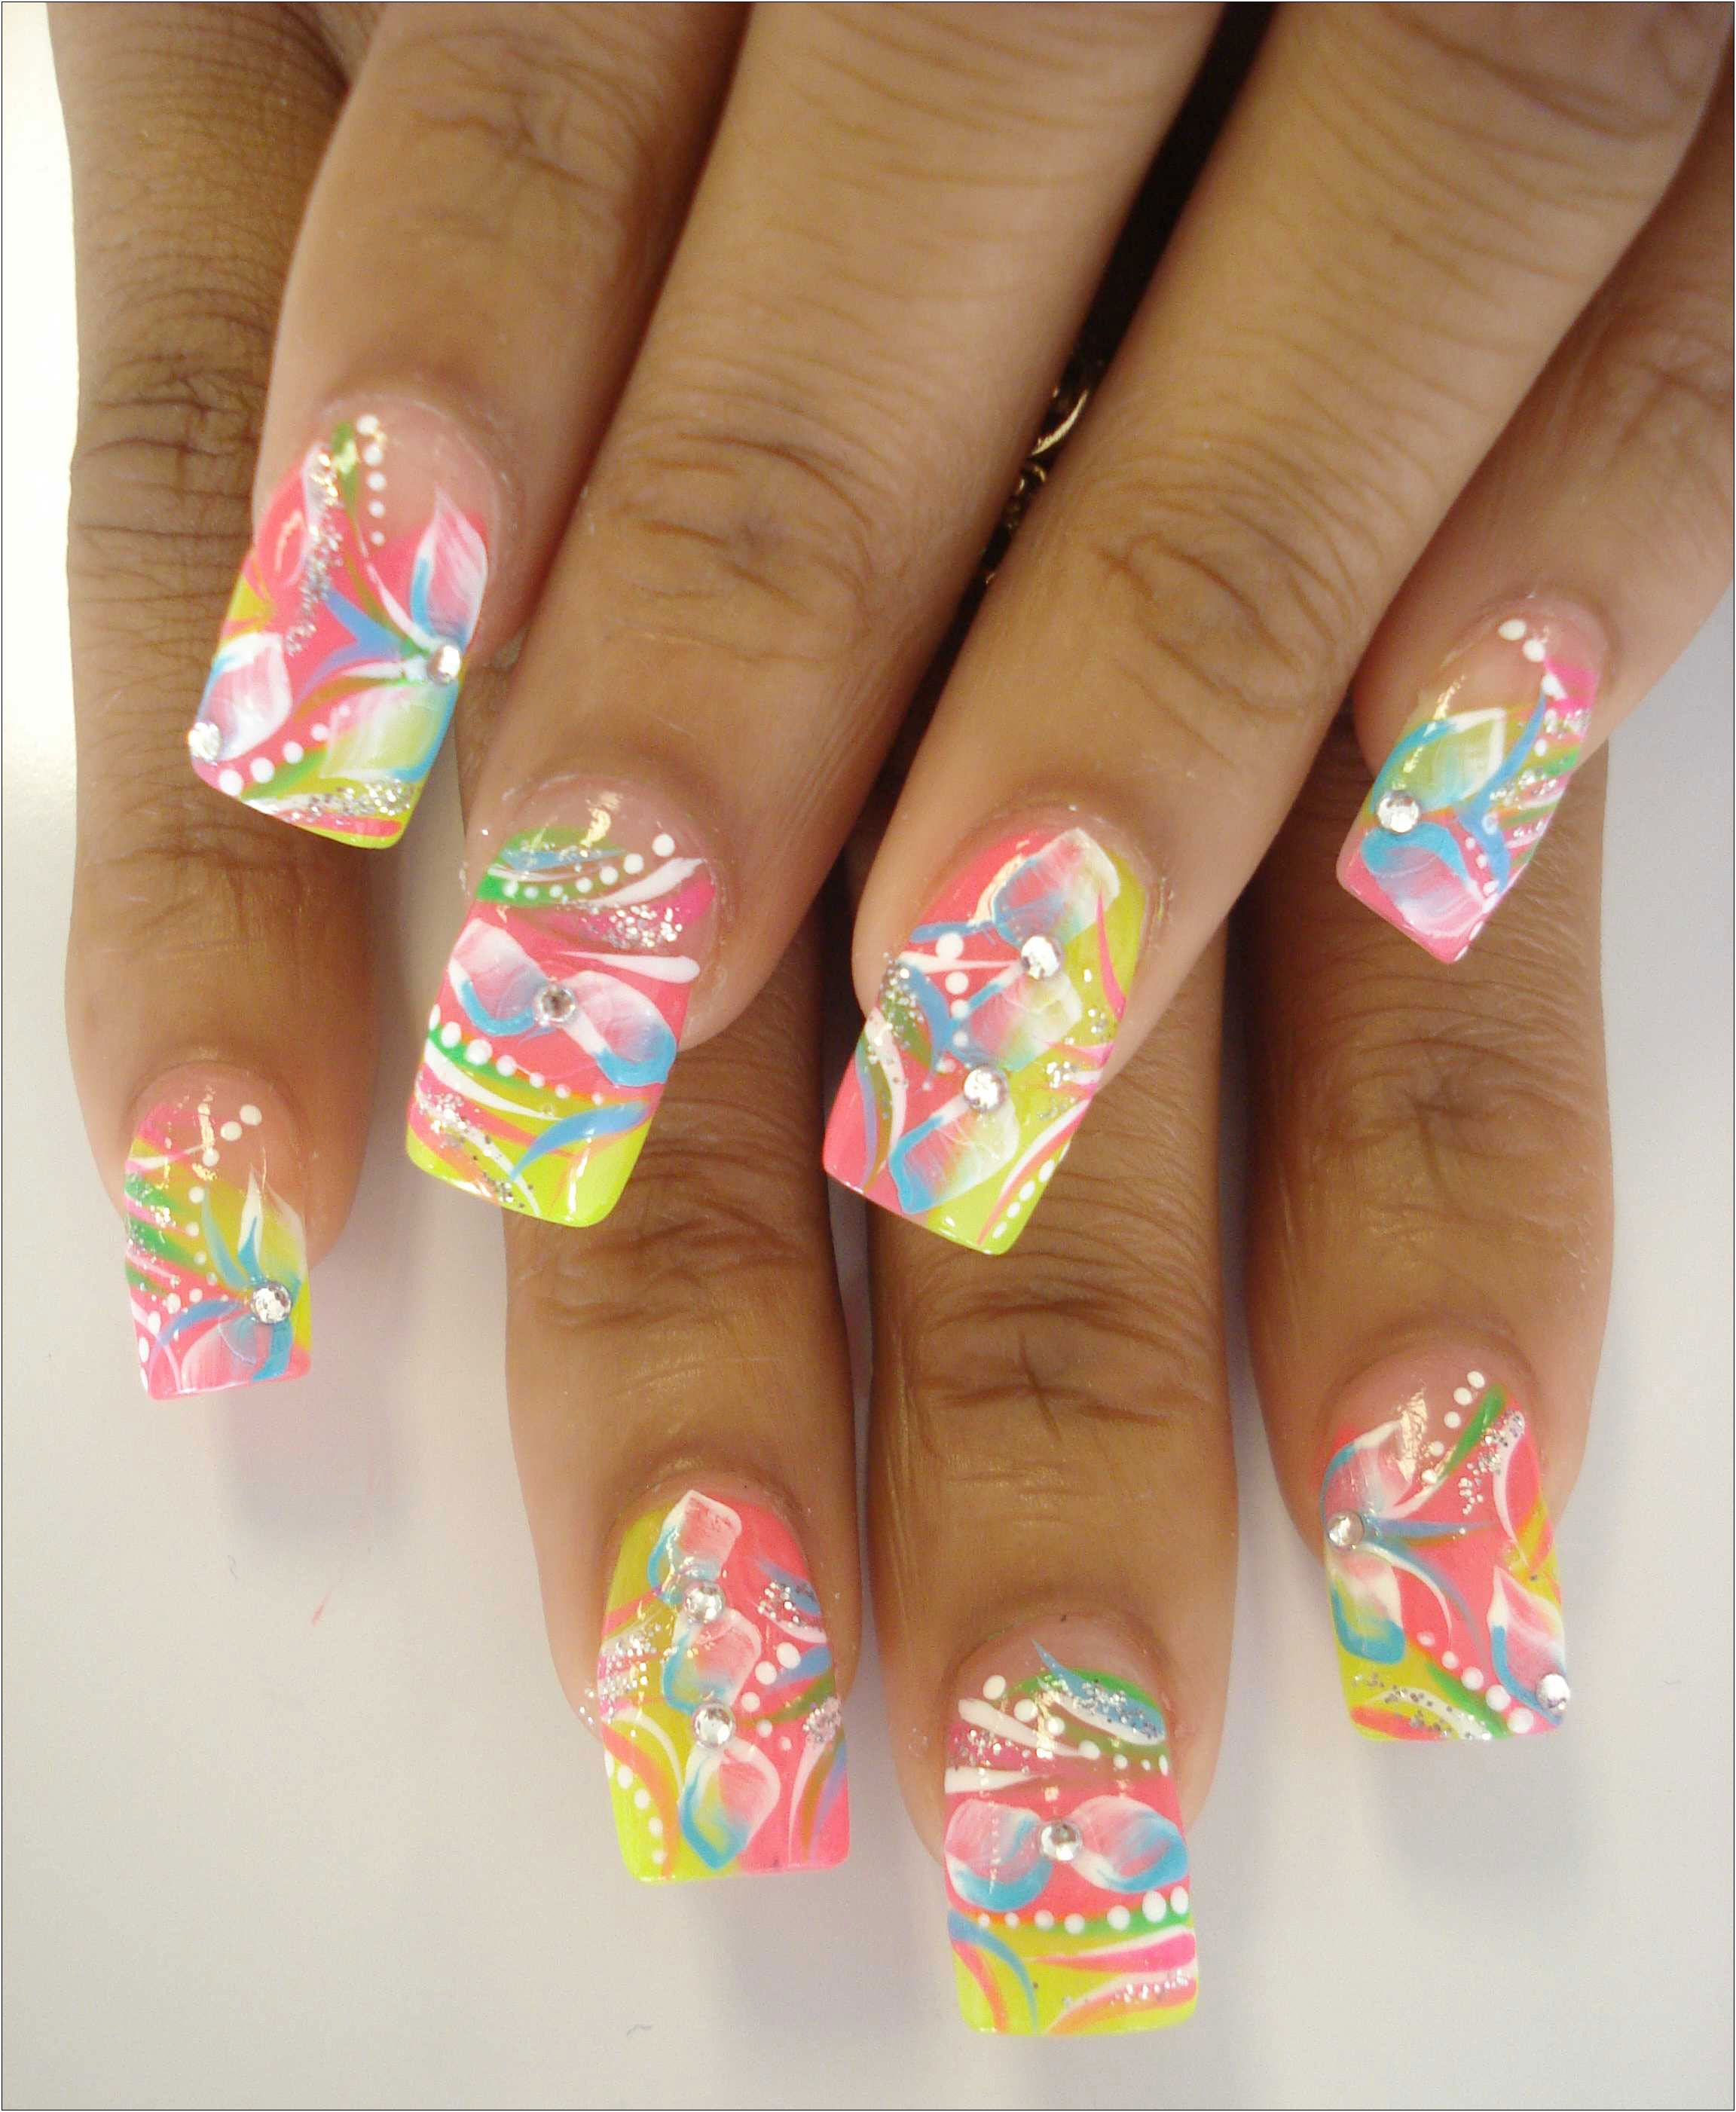 Awesome Spring Nails | Beauty | Pinterest | Spring nails